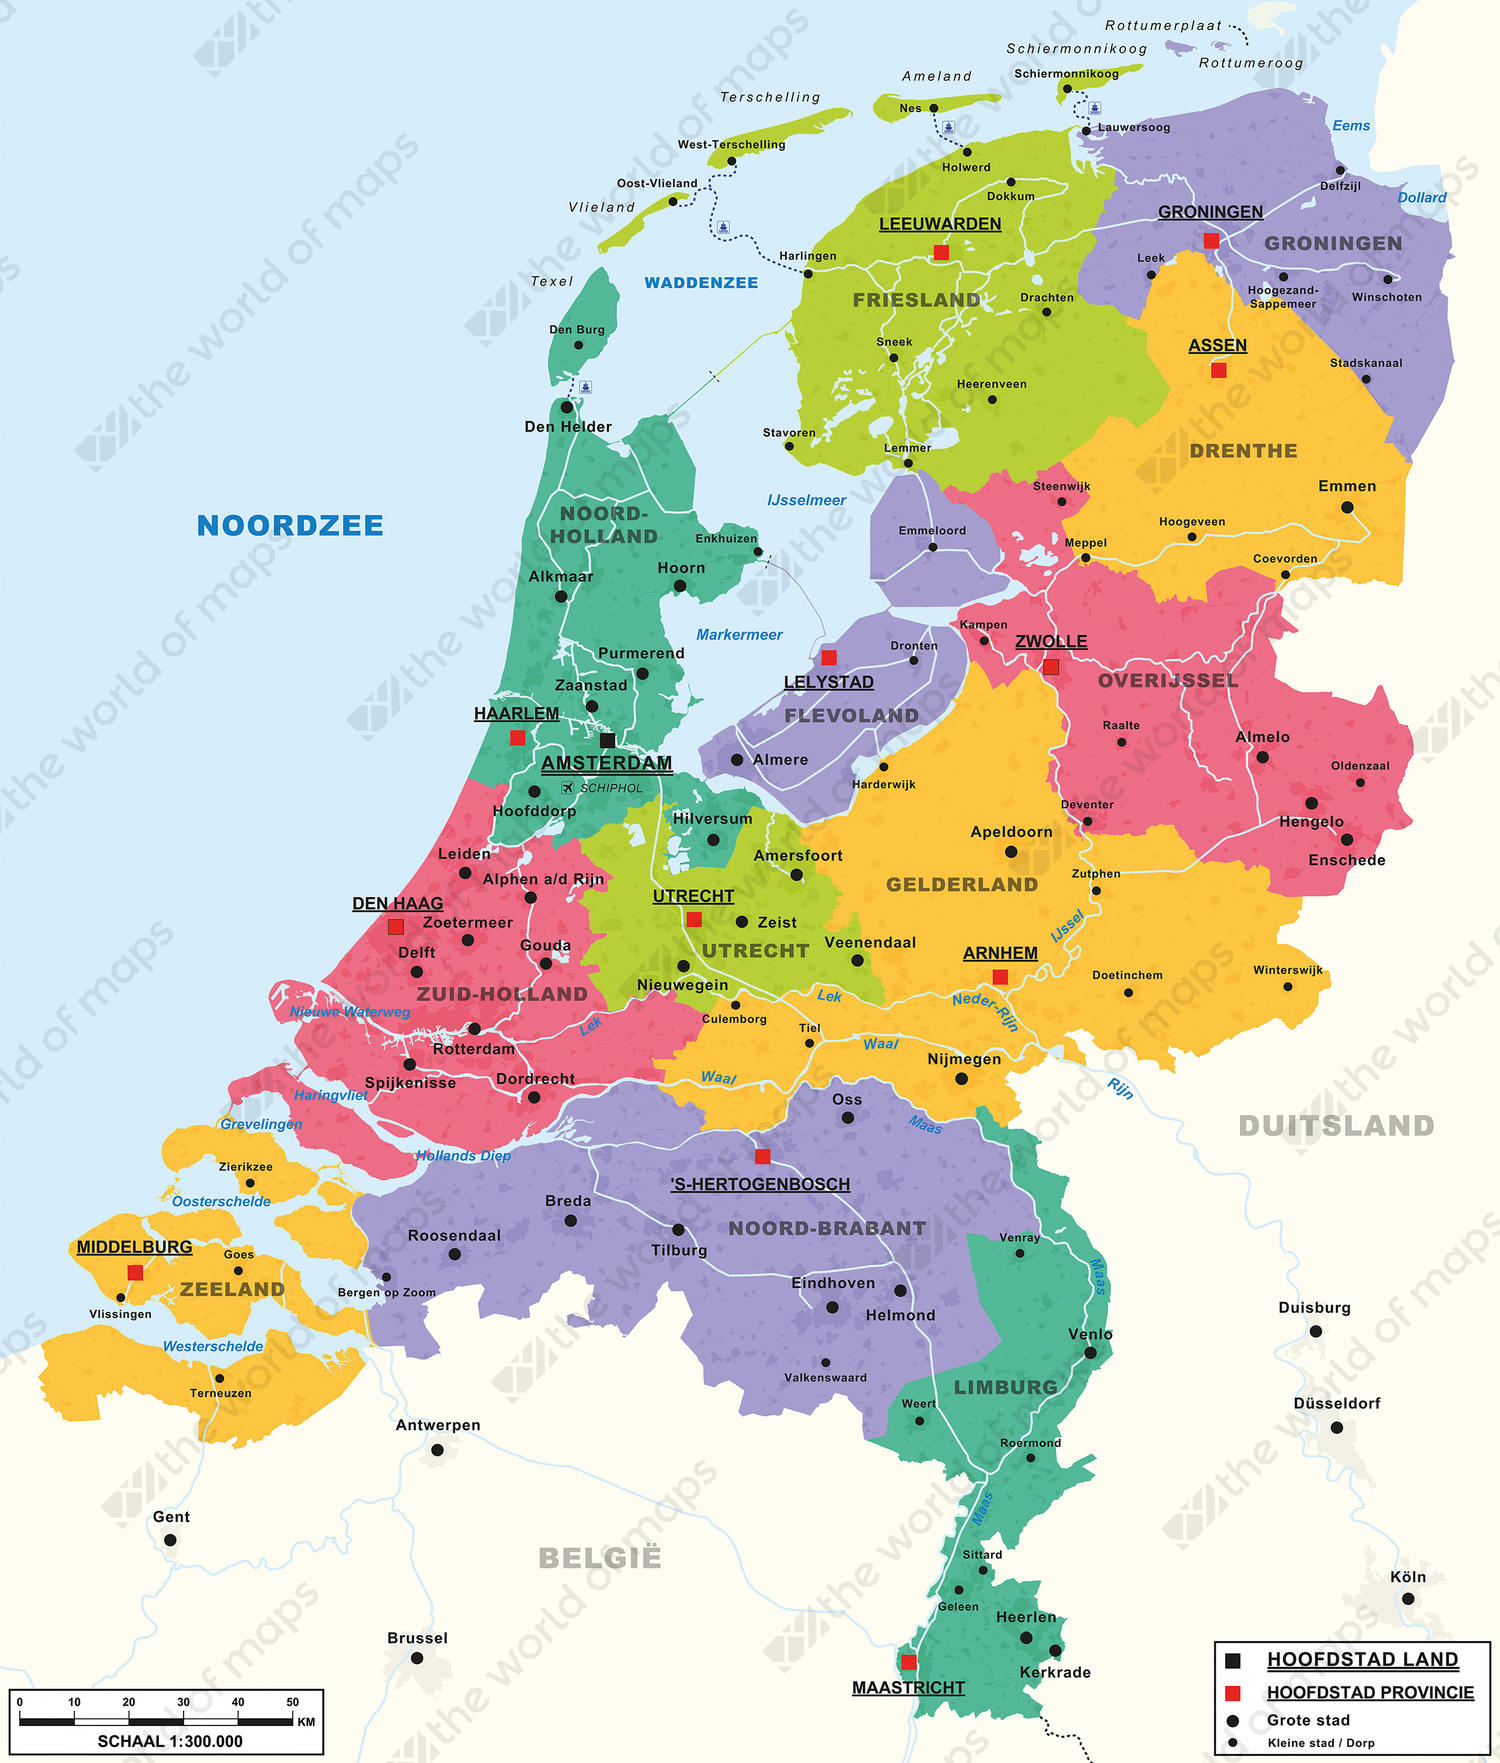 Digital Basic Map of The Netherlands 462 The World of Mapscom